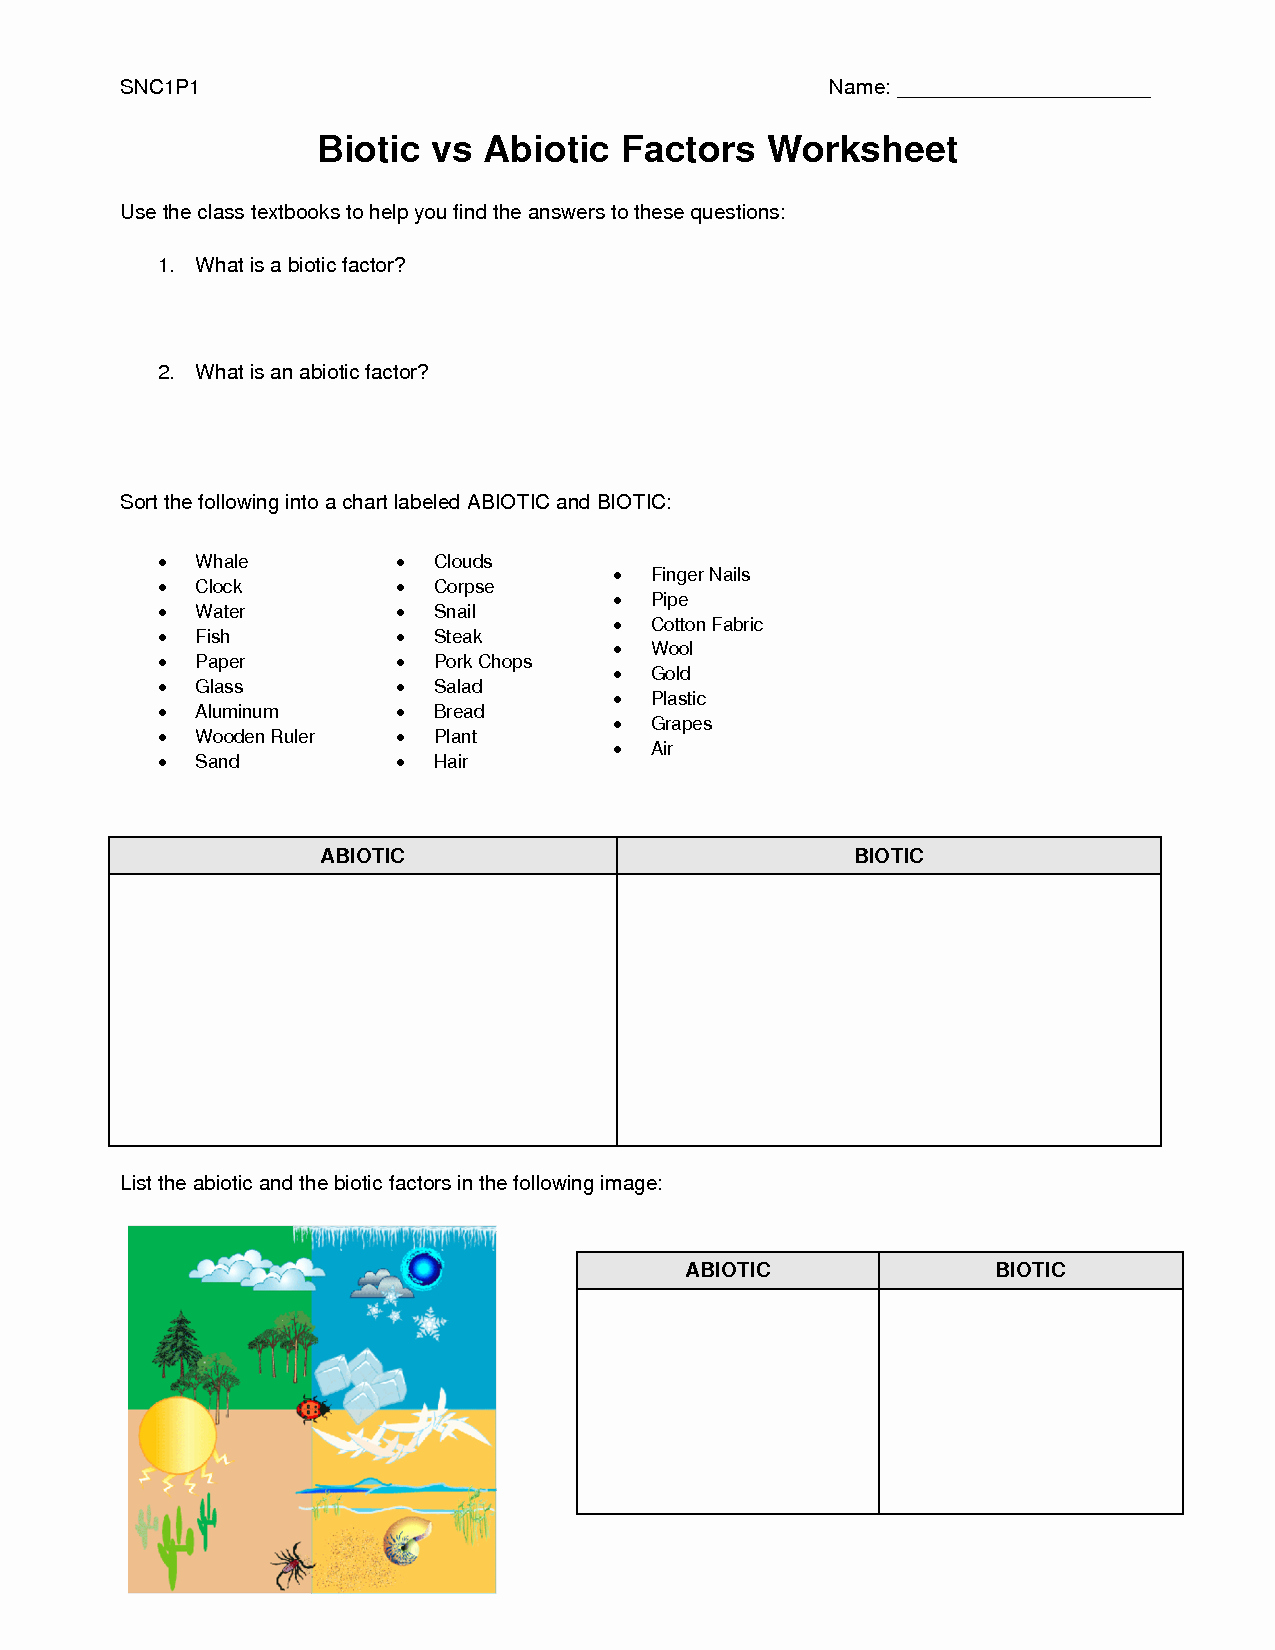 Abiotic and Biotic Factors Worksheet Elegant Biotic and Abiotic Factors Worksheet Google Search